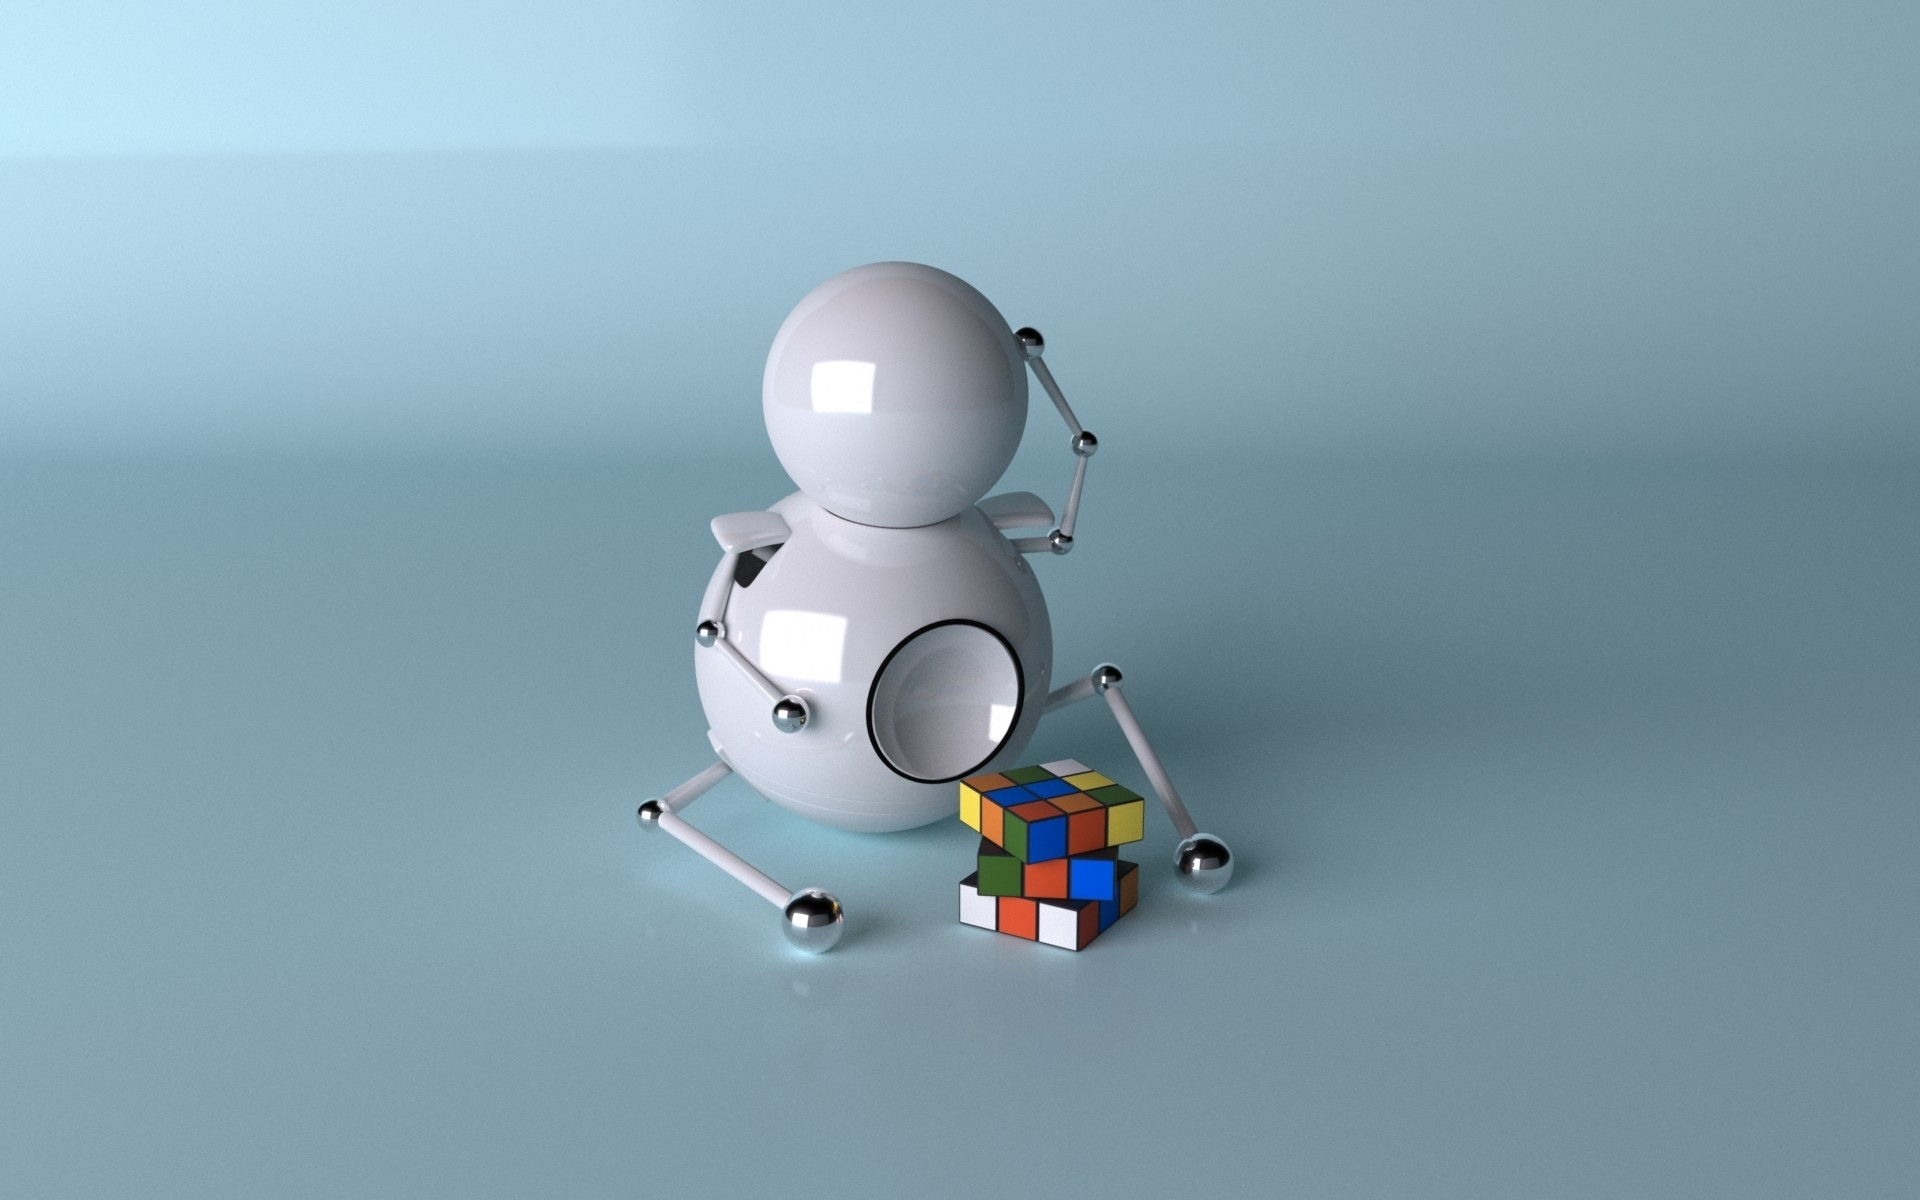 The robot and the Rubik's cube